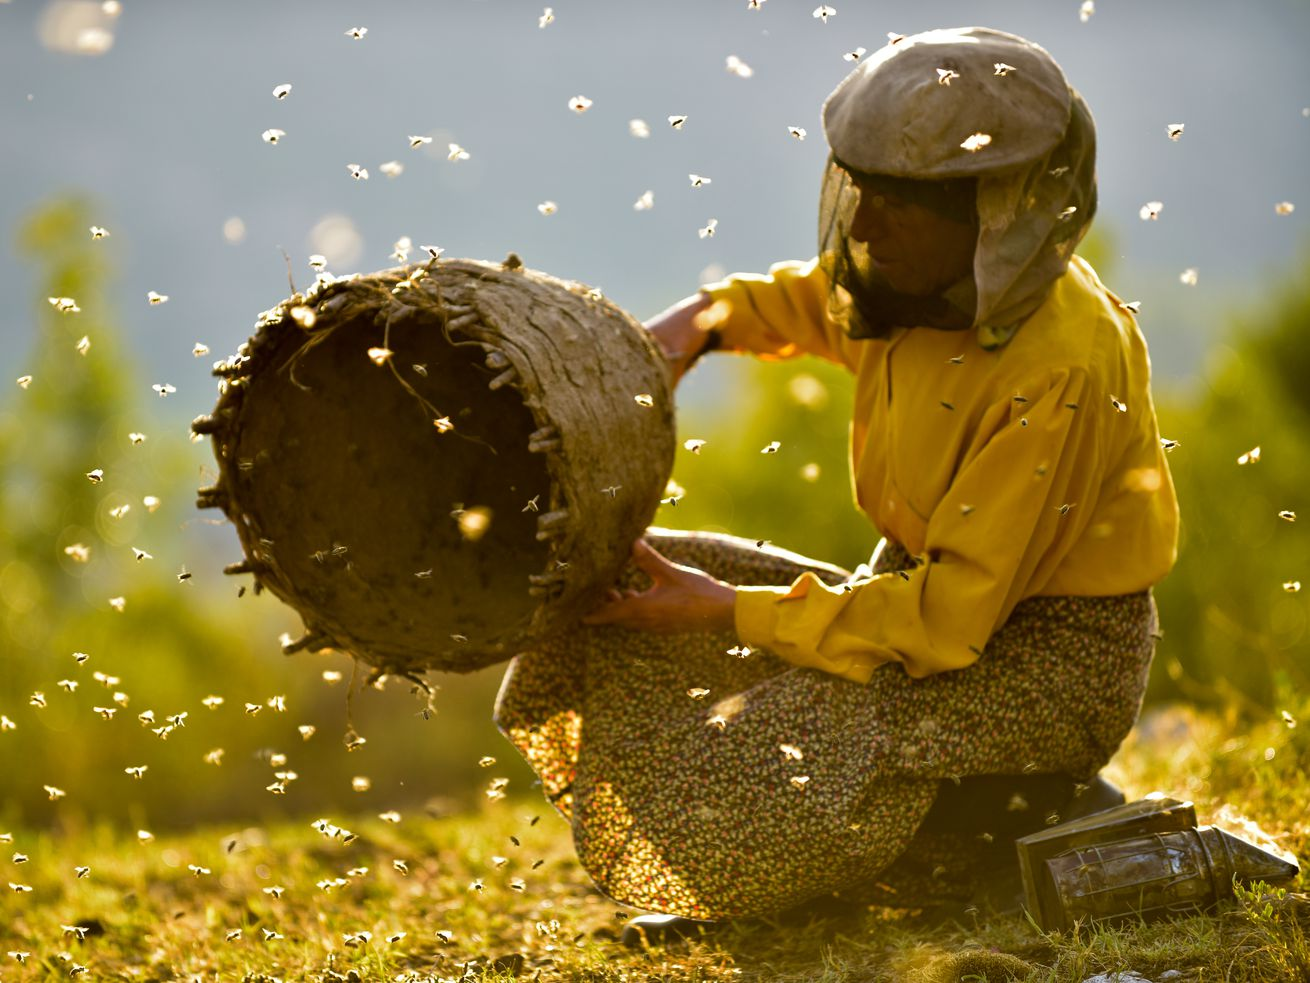 Movie review: It's clear why 'Honeyland' received a lot of buzz at Sundance